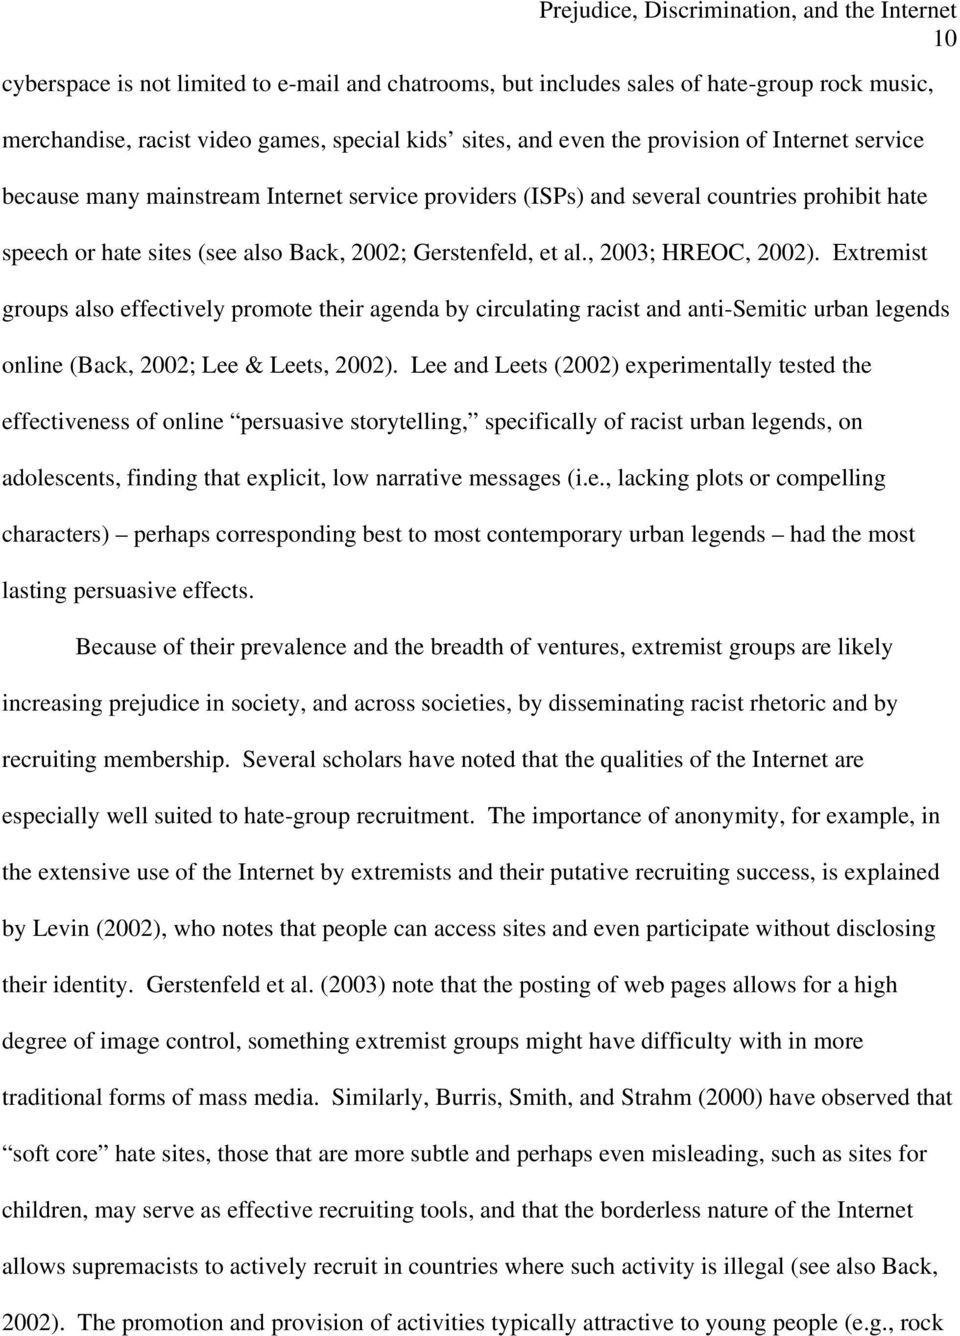 Extremist groups also effectively promote their agenda by circulating racist and anti-semitic urban legends online (Back, 2002; Lee & Leets, 2002).